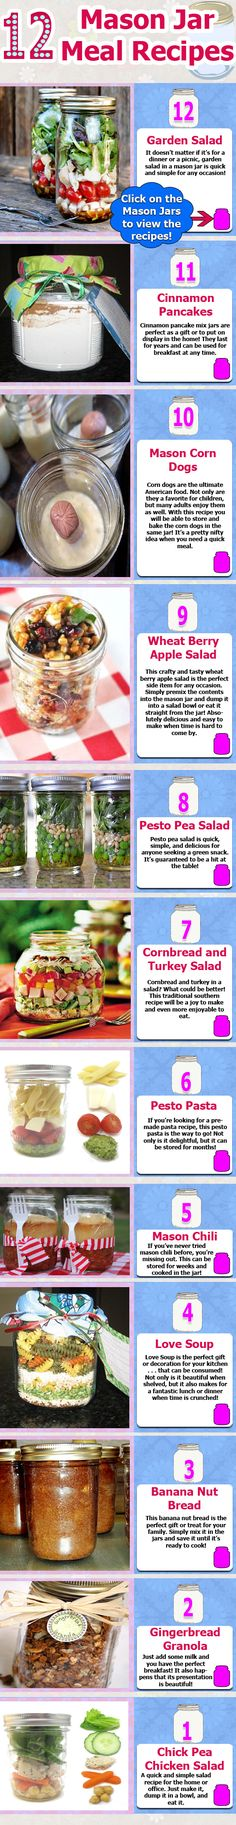 12 Mason Jar Meal Recipes- love this!! Some of them are meals made in the mason jars and some are meal mixes to give as gifts.